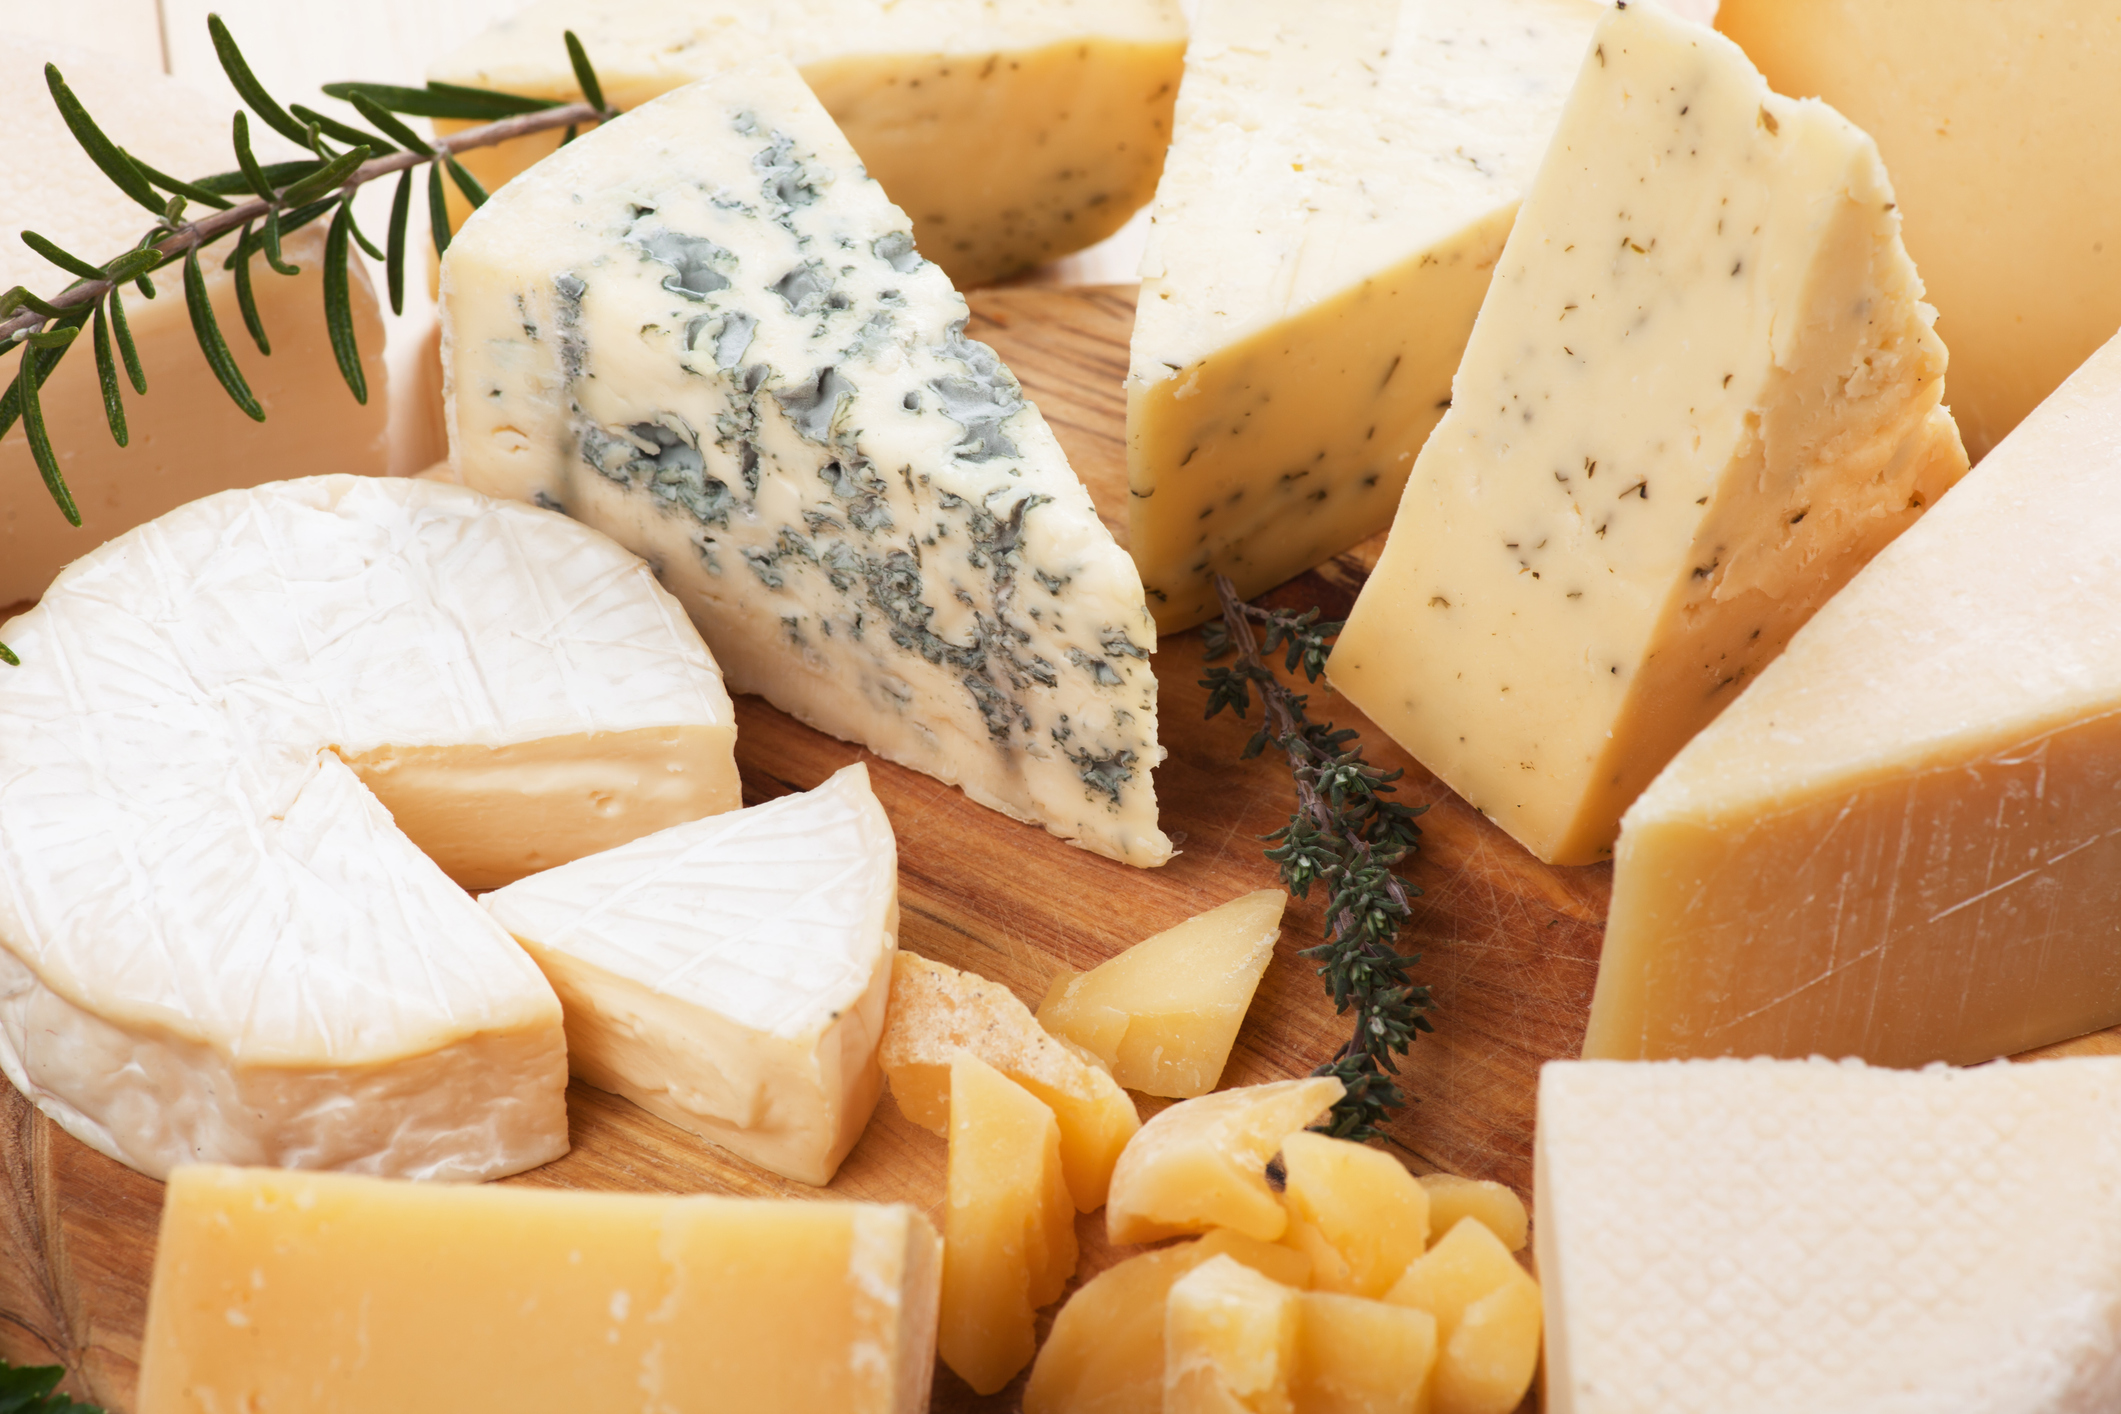 a photo of different types of cheese